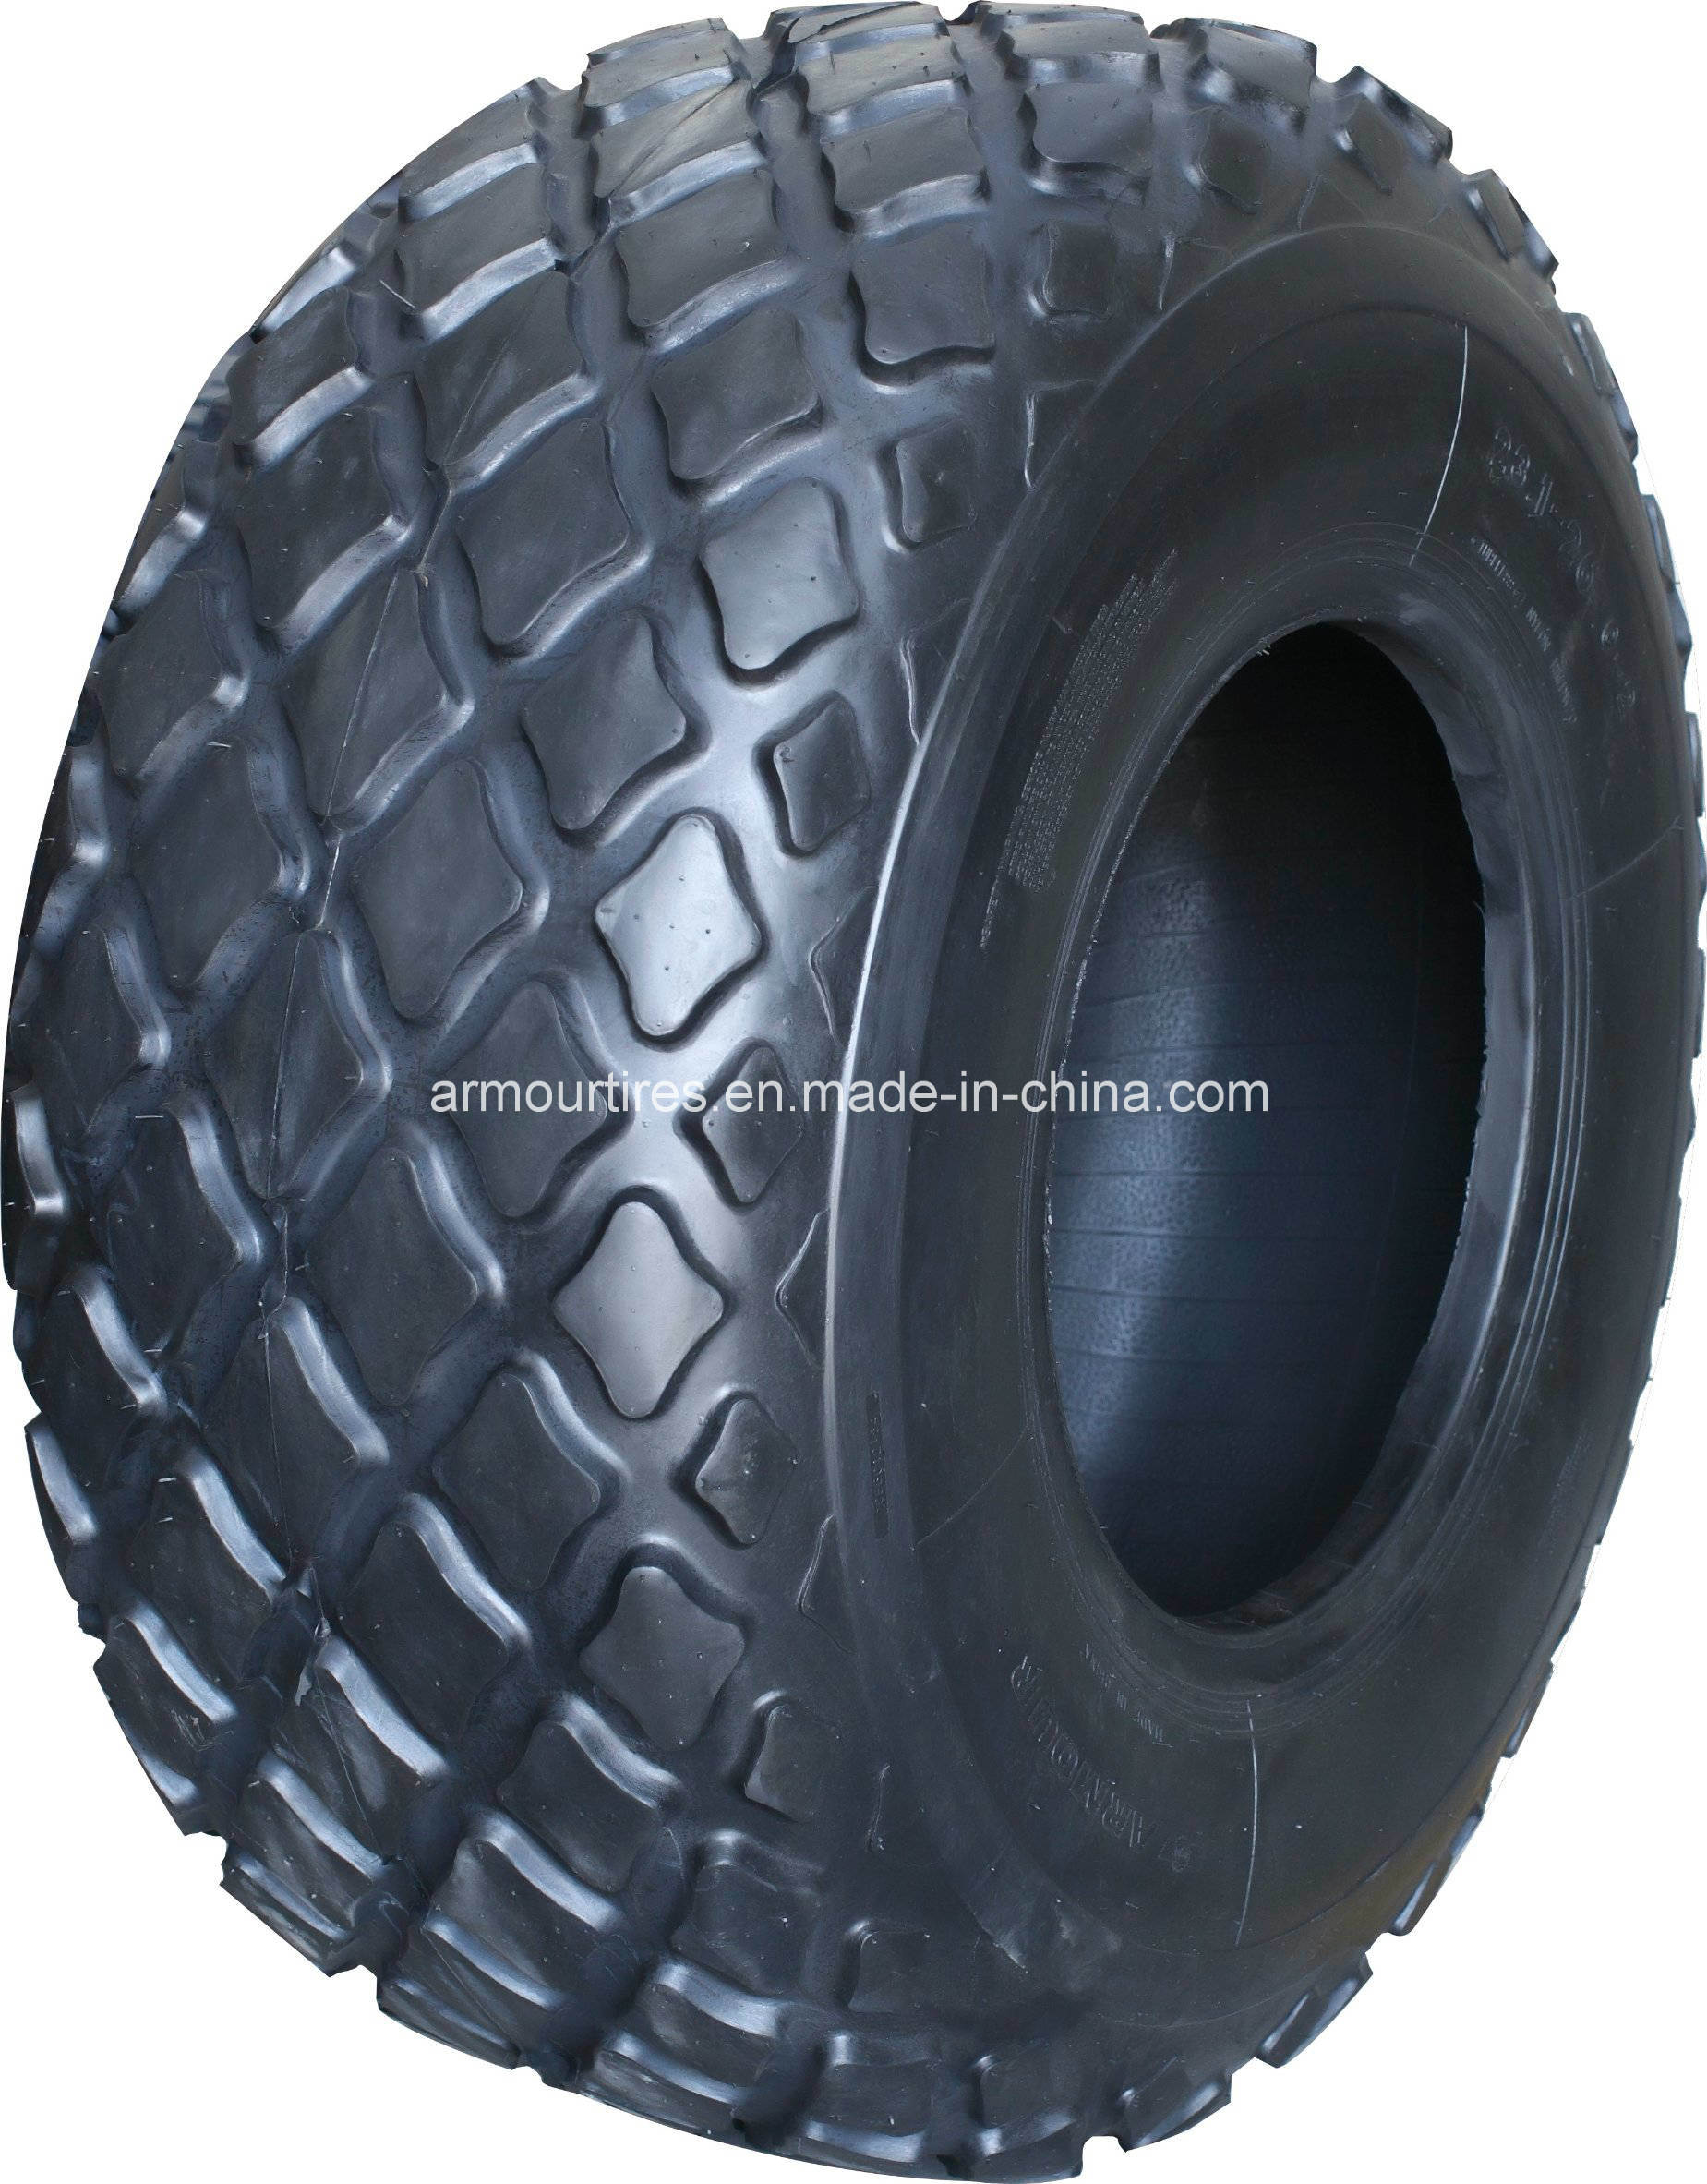 23.1-26 C2 Armour OTR Tyre for Compactor (DYNAPAC, CATERPILLAR, XCMG)